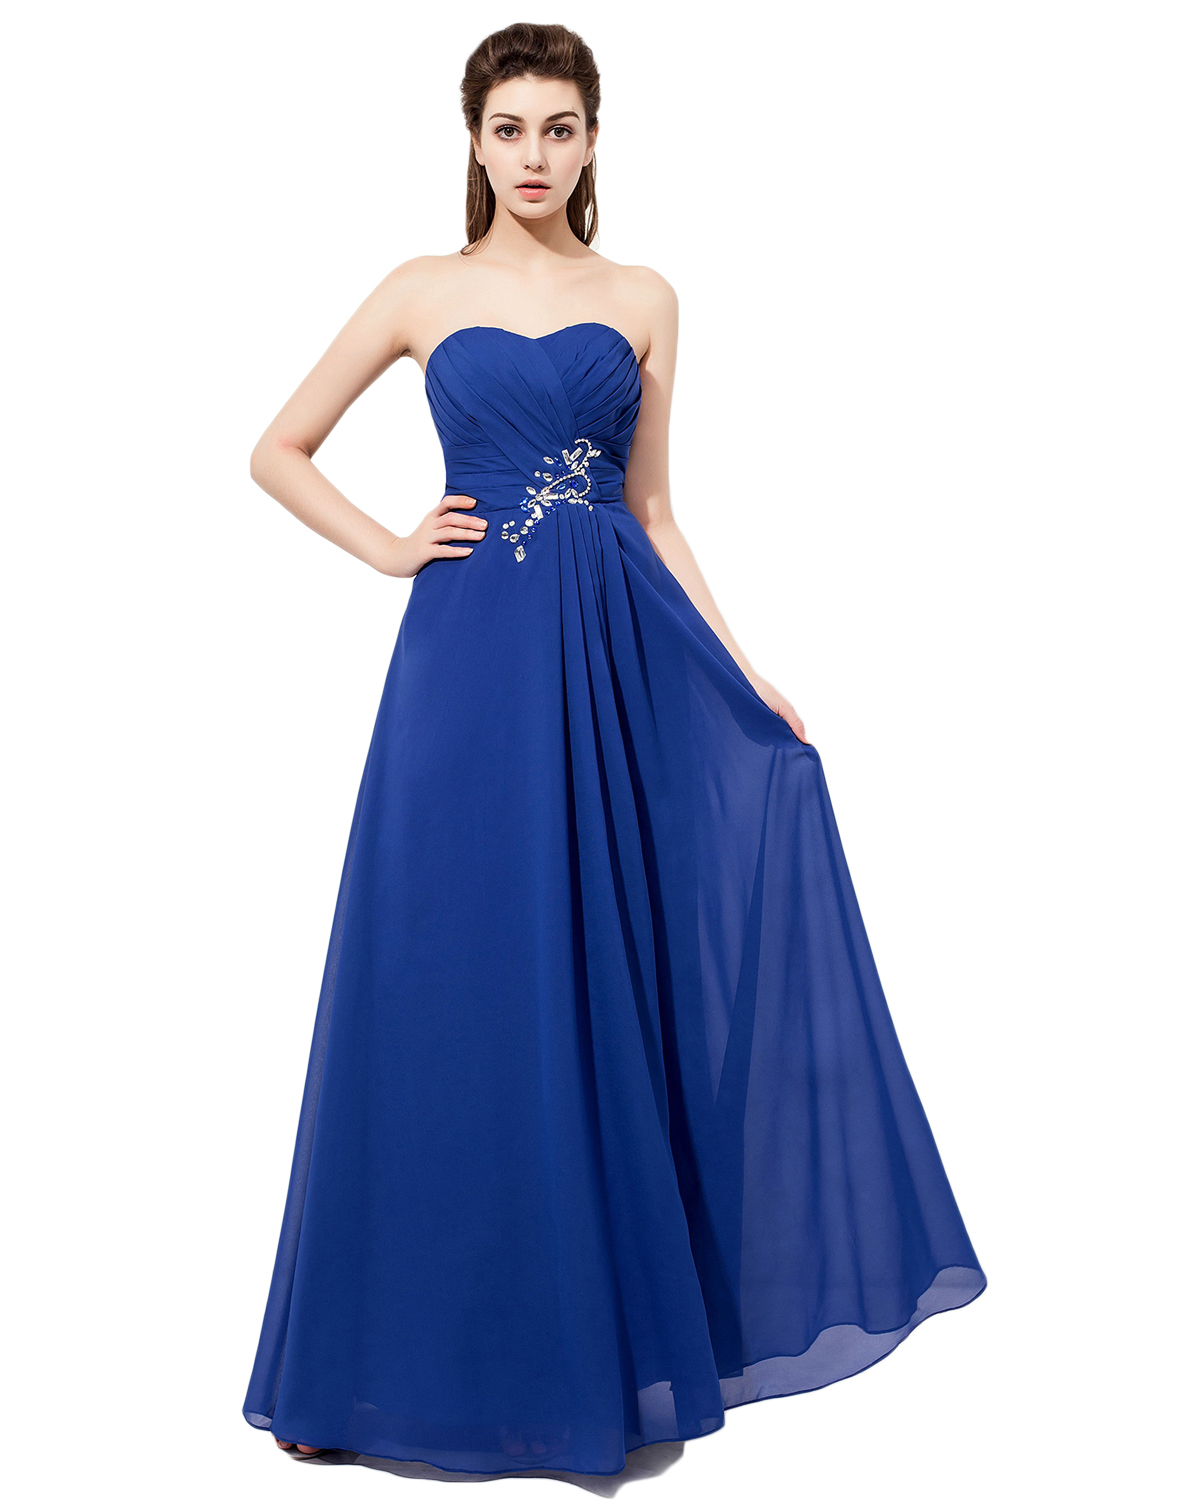 Strapless Bridesmaid Dresses,Royal Blue